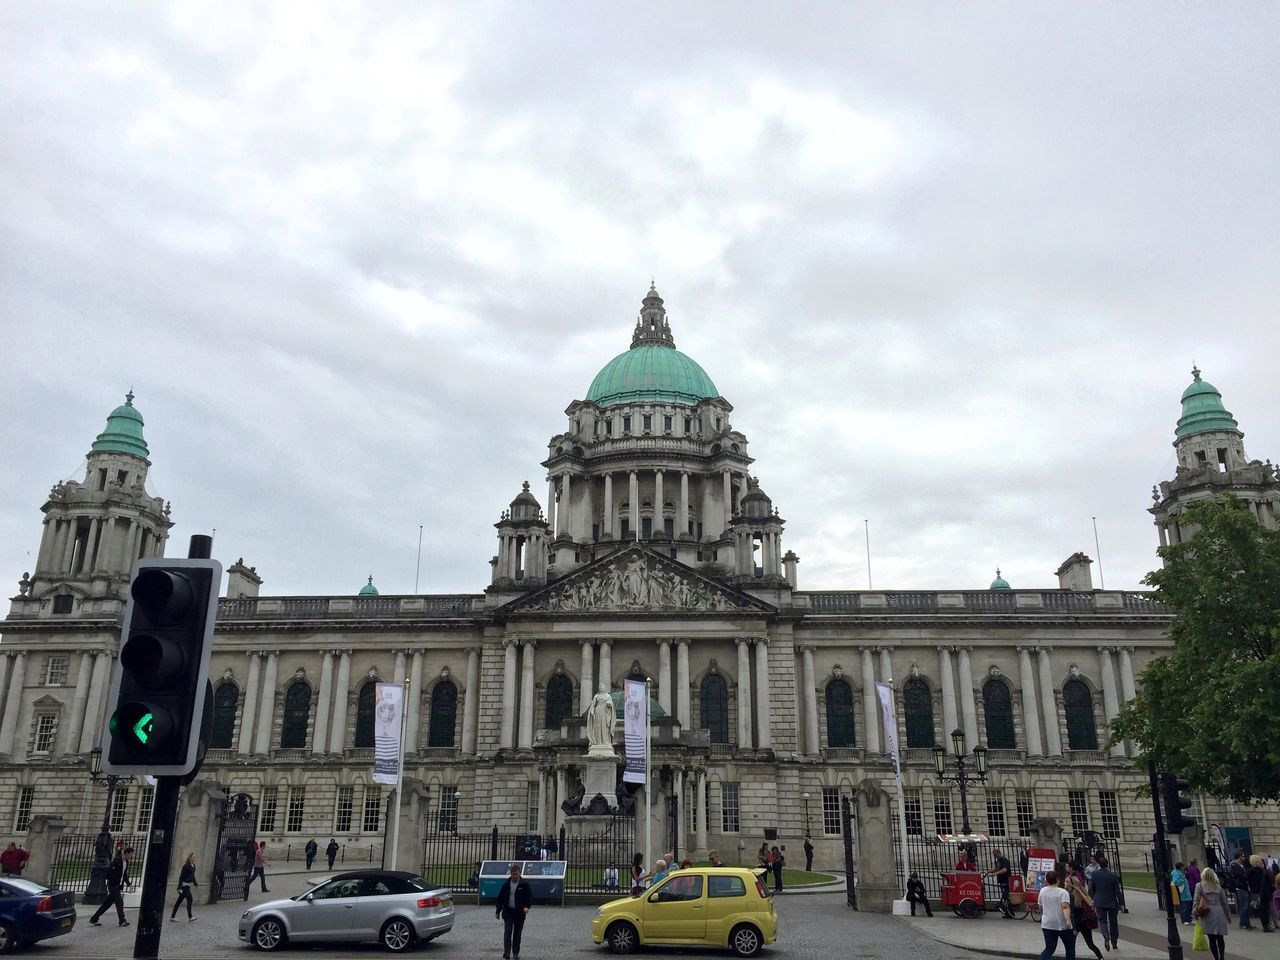 Belfast city hall. Eyeemphoto City Hall Belfast Architecture Amazing Architecture Historical Building Tourist Attraction  EyeEm Best Shots Tourism People Eye4photography  Traffic Traffic Light  EyeEm Tourists EyeEm Gallery Tourist Destination City Transportation Getty X EyeEm City Life Famous Places EyeEm Masterclass